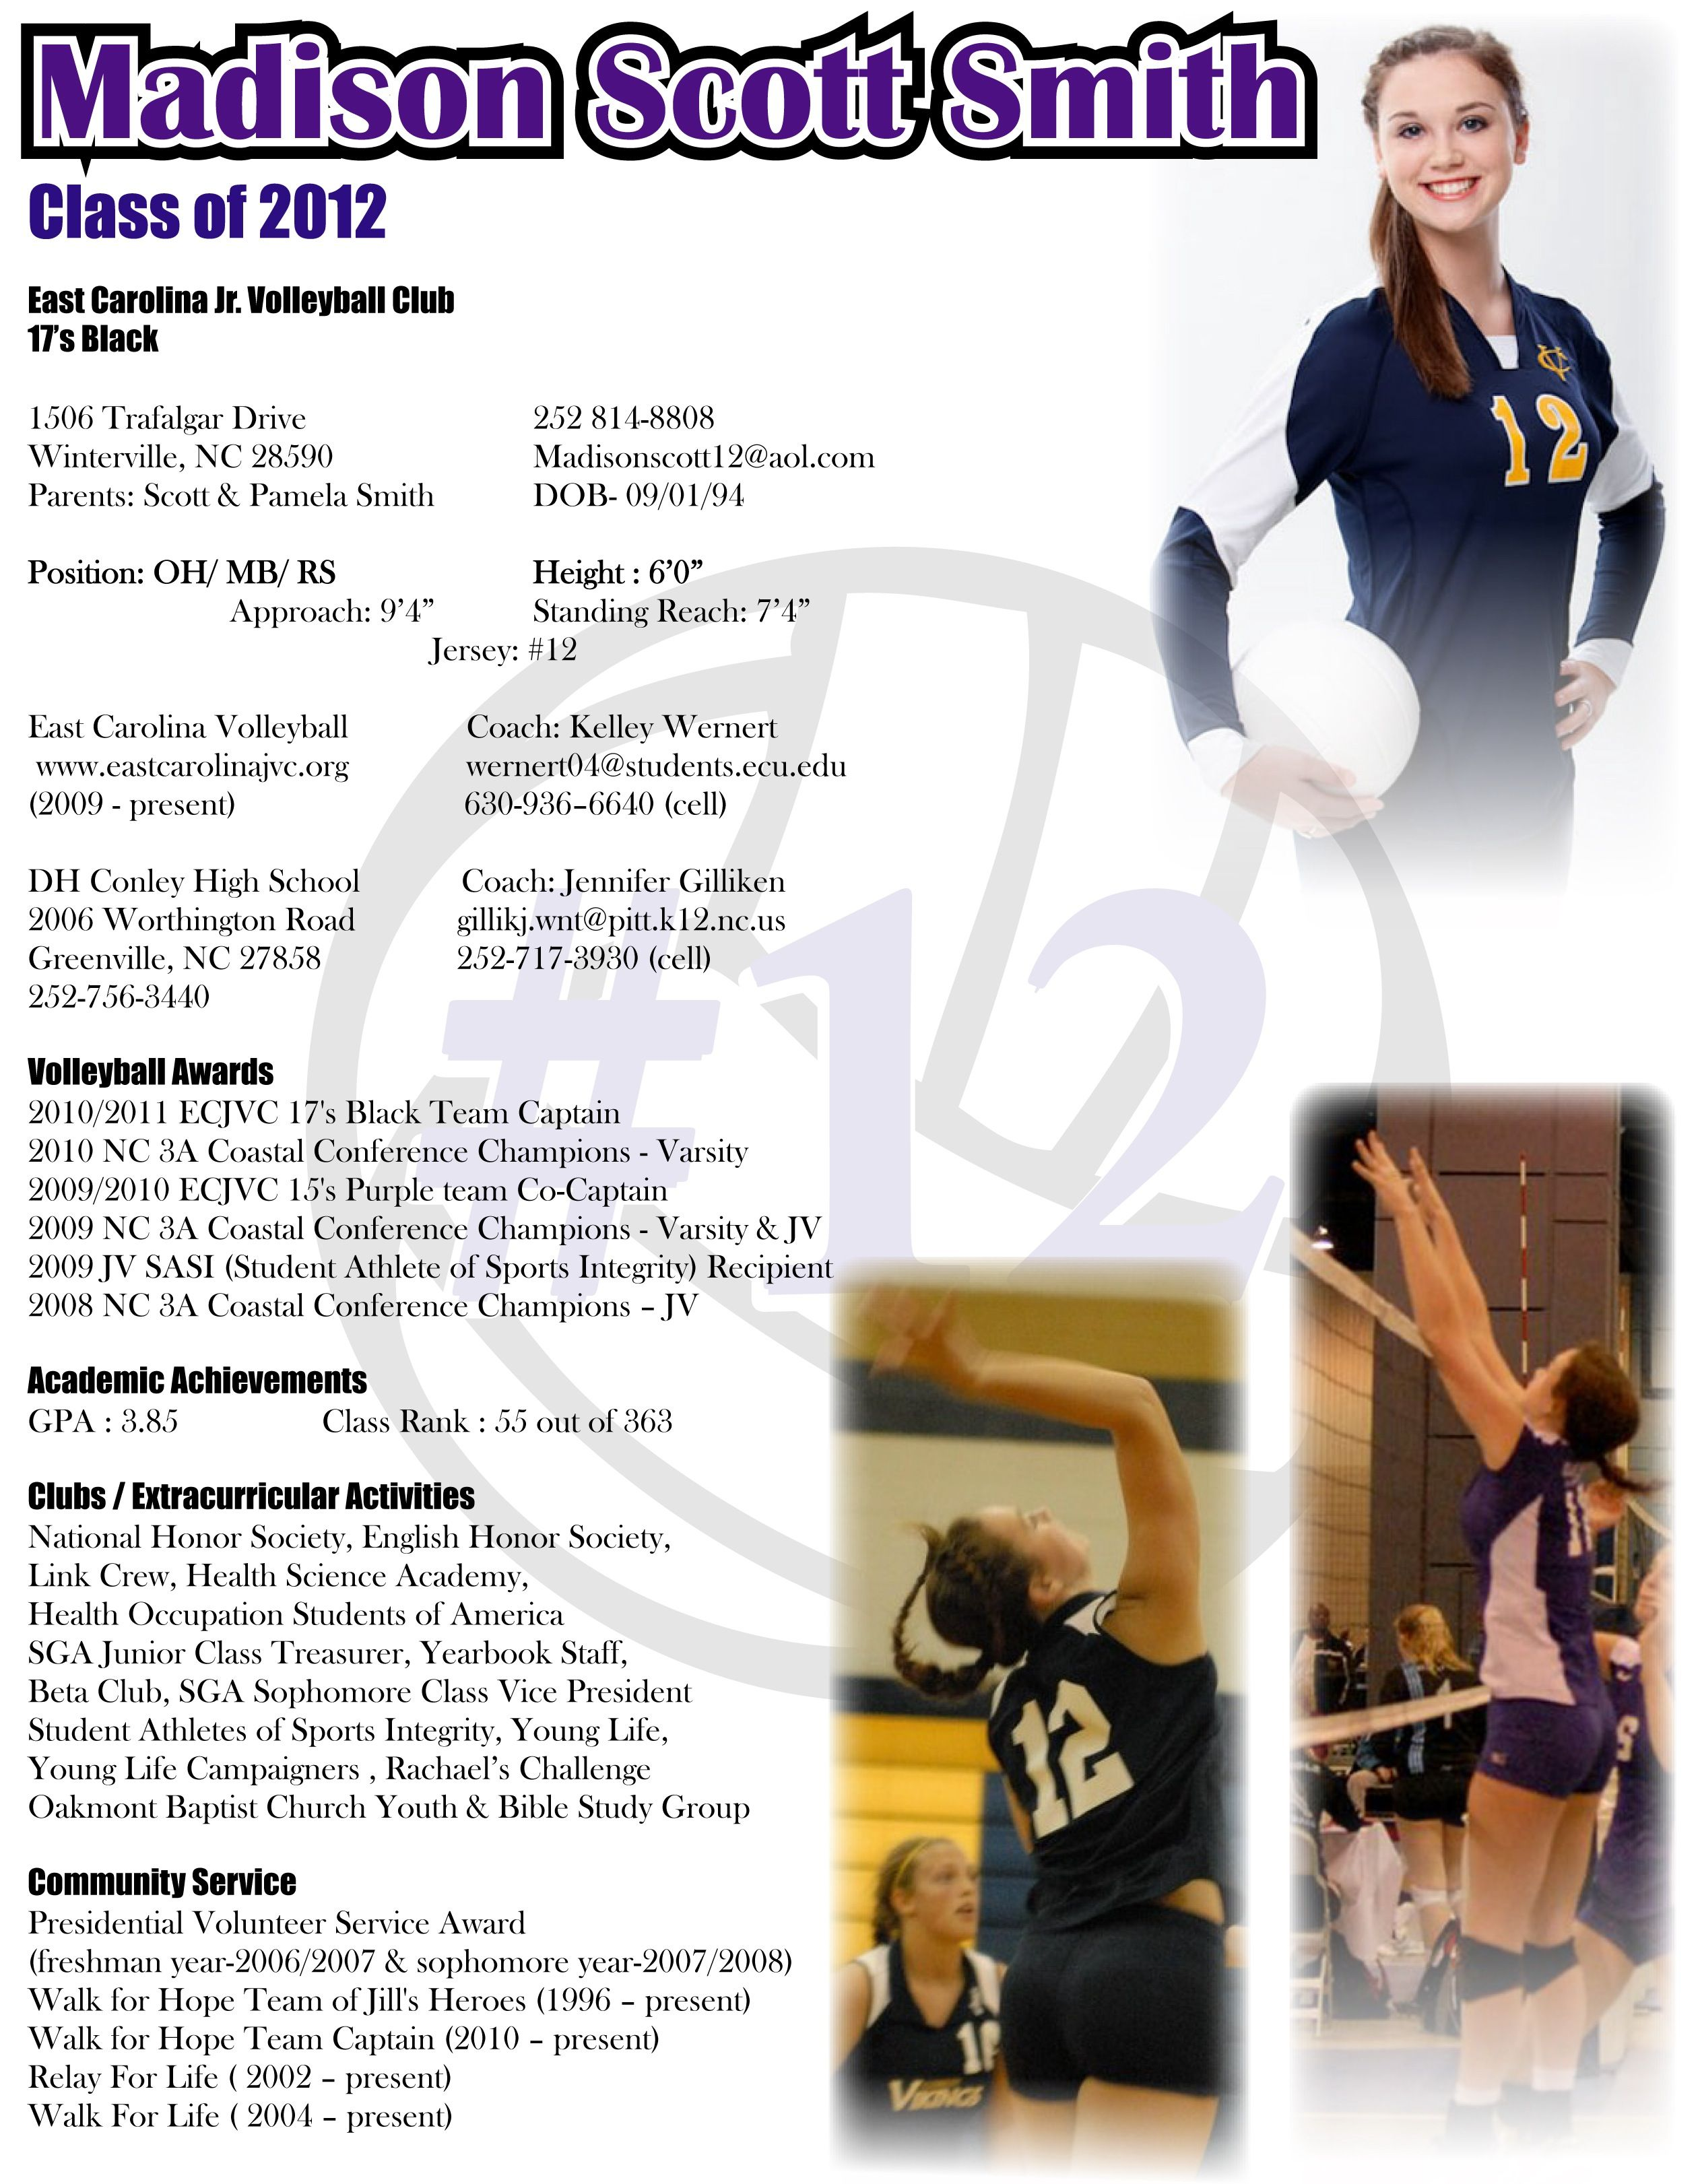 softball resume sports resumes recruiting flyers madison recruiting flyer resume